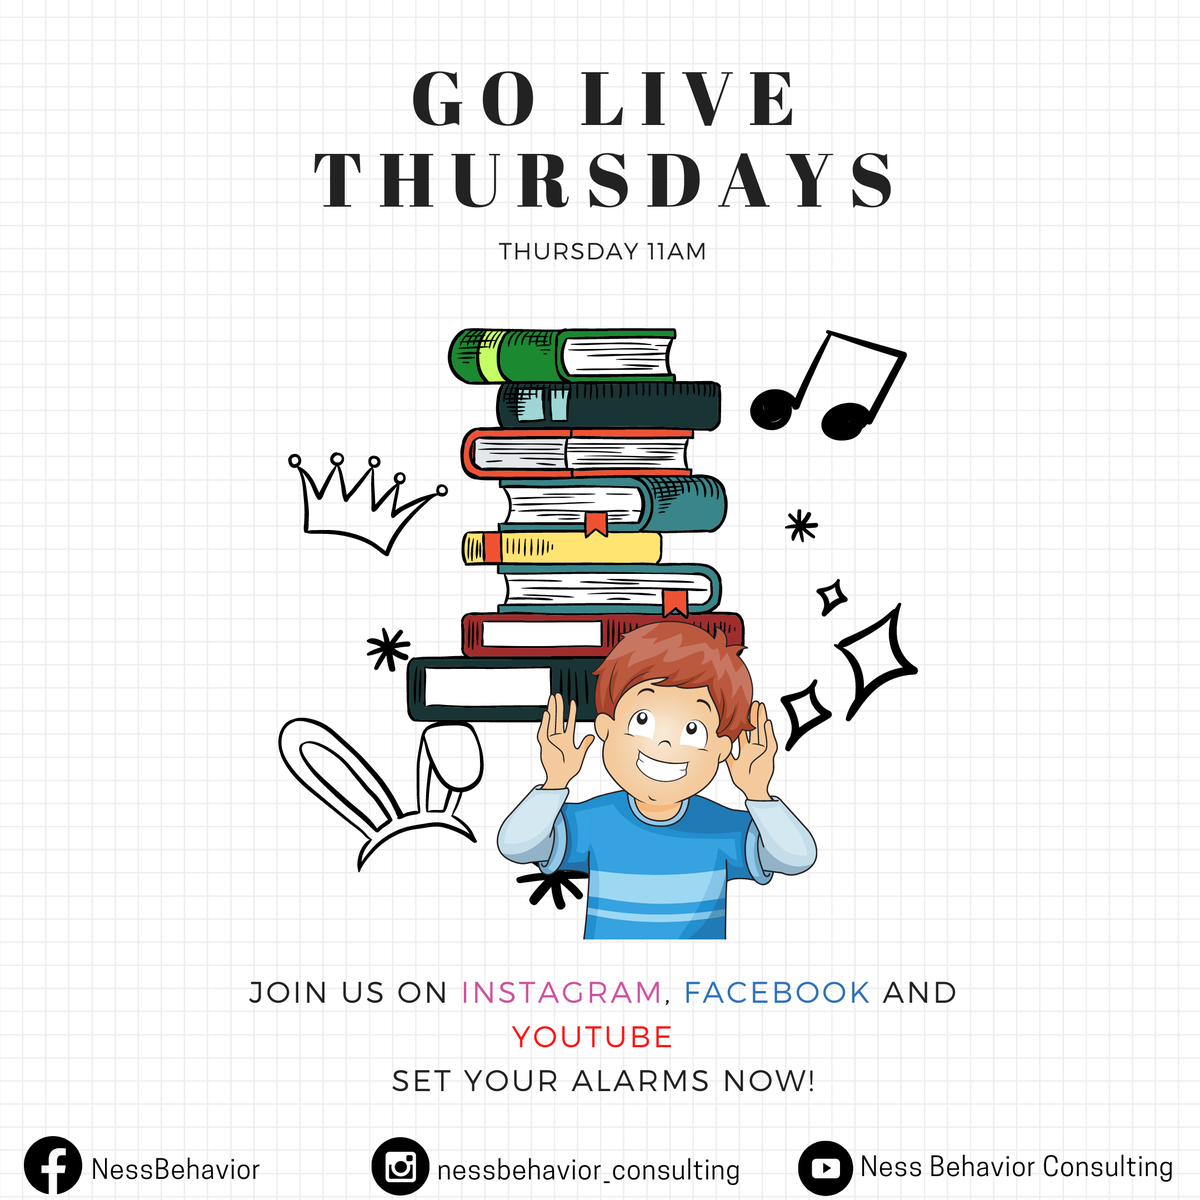 WE ARE NOW GOING LIVE EVERY THURSDAYS! 😉  Catch us on our Instagram, Facebook and Youtube! SET YOU ALARMS NOW! 🙋🏻🔊🔔  #autismawareness #autismspeaks #autism #autismspectrum #autismo #educate #mentalhealth#blackownedbusiness #supportblack #supportautism #autismacceptance https://t.co/KztwChoAPQ